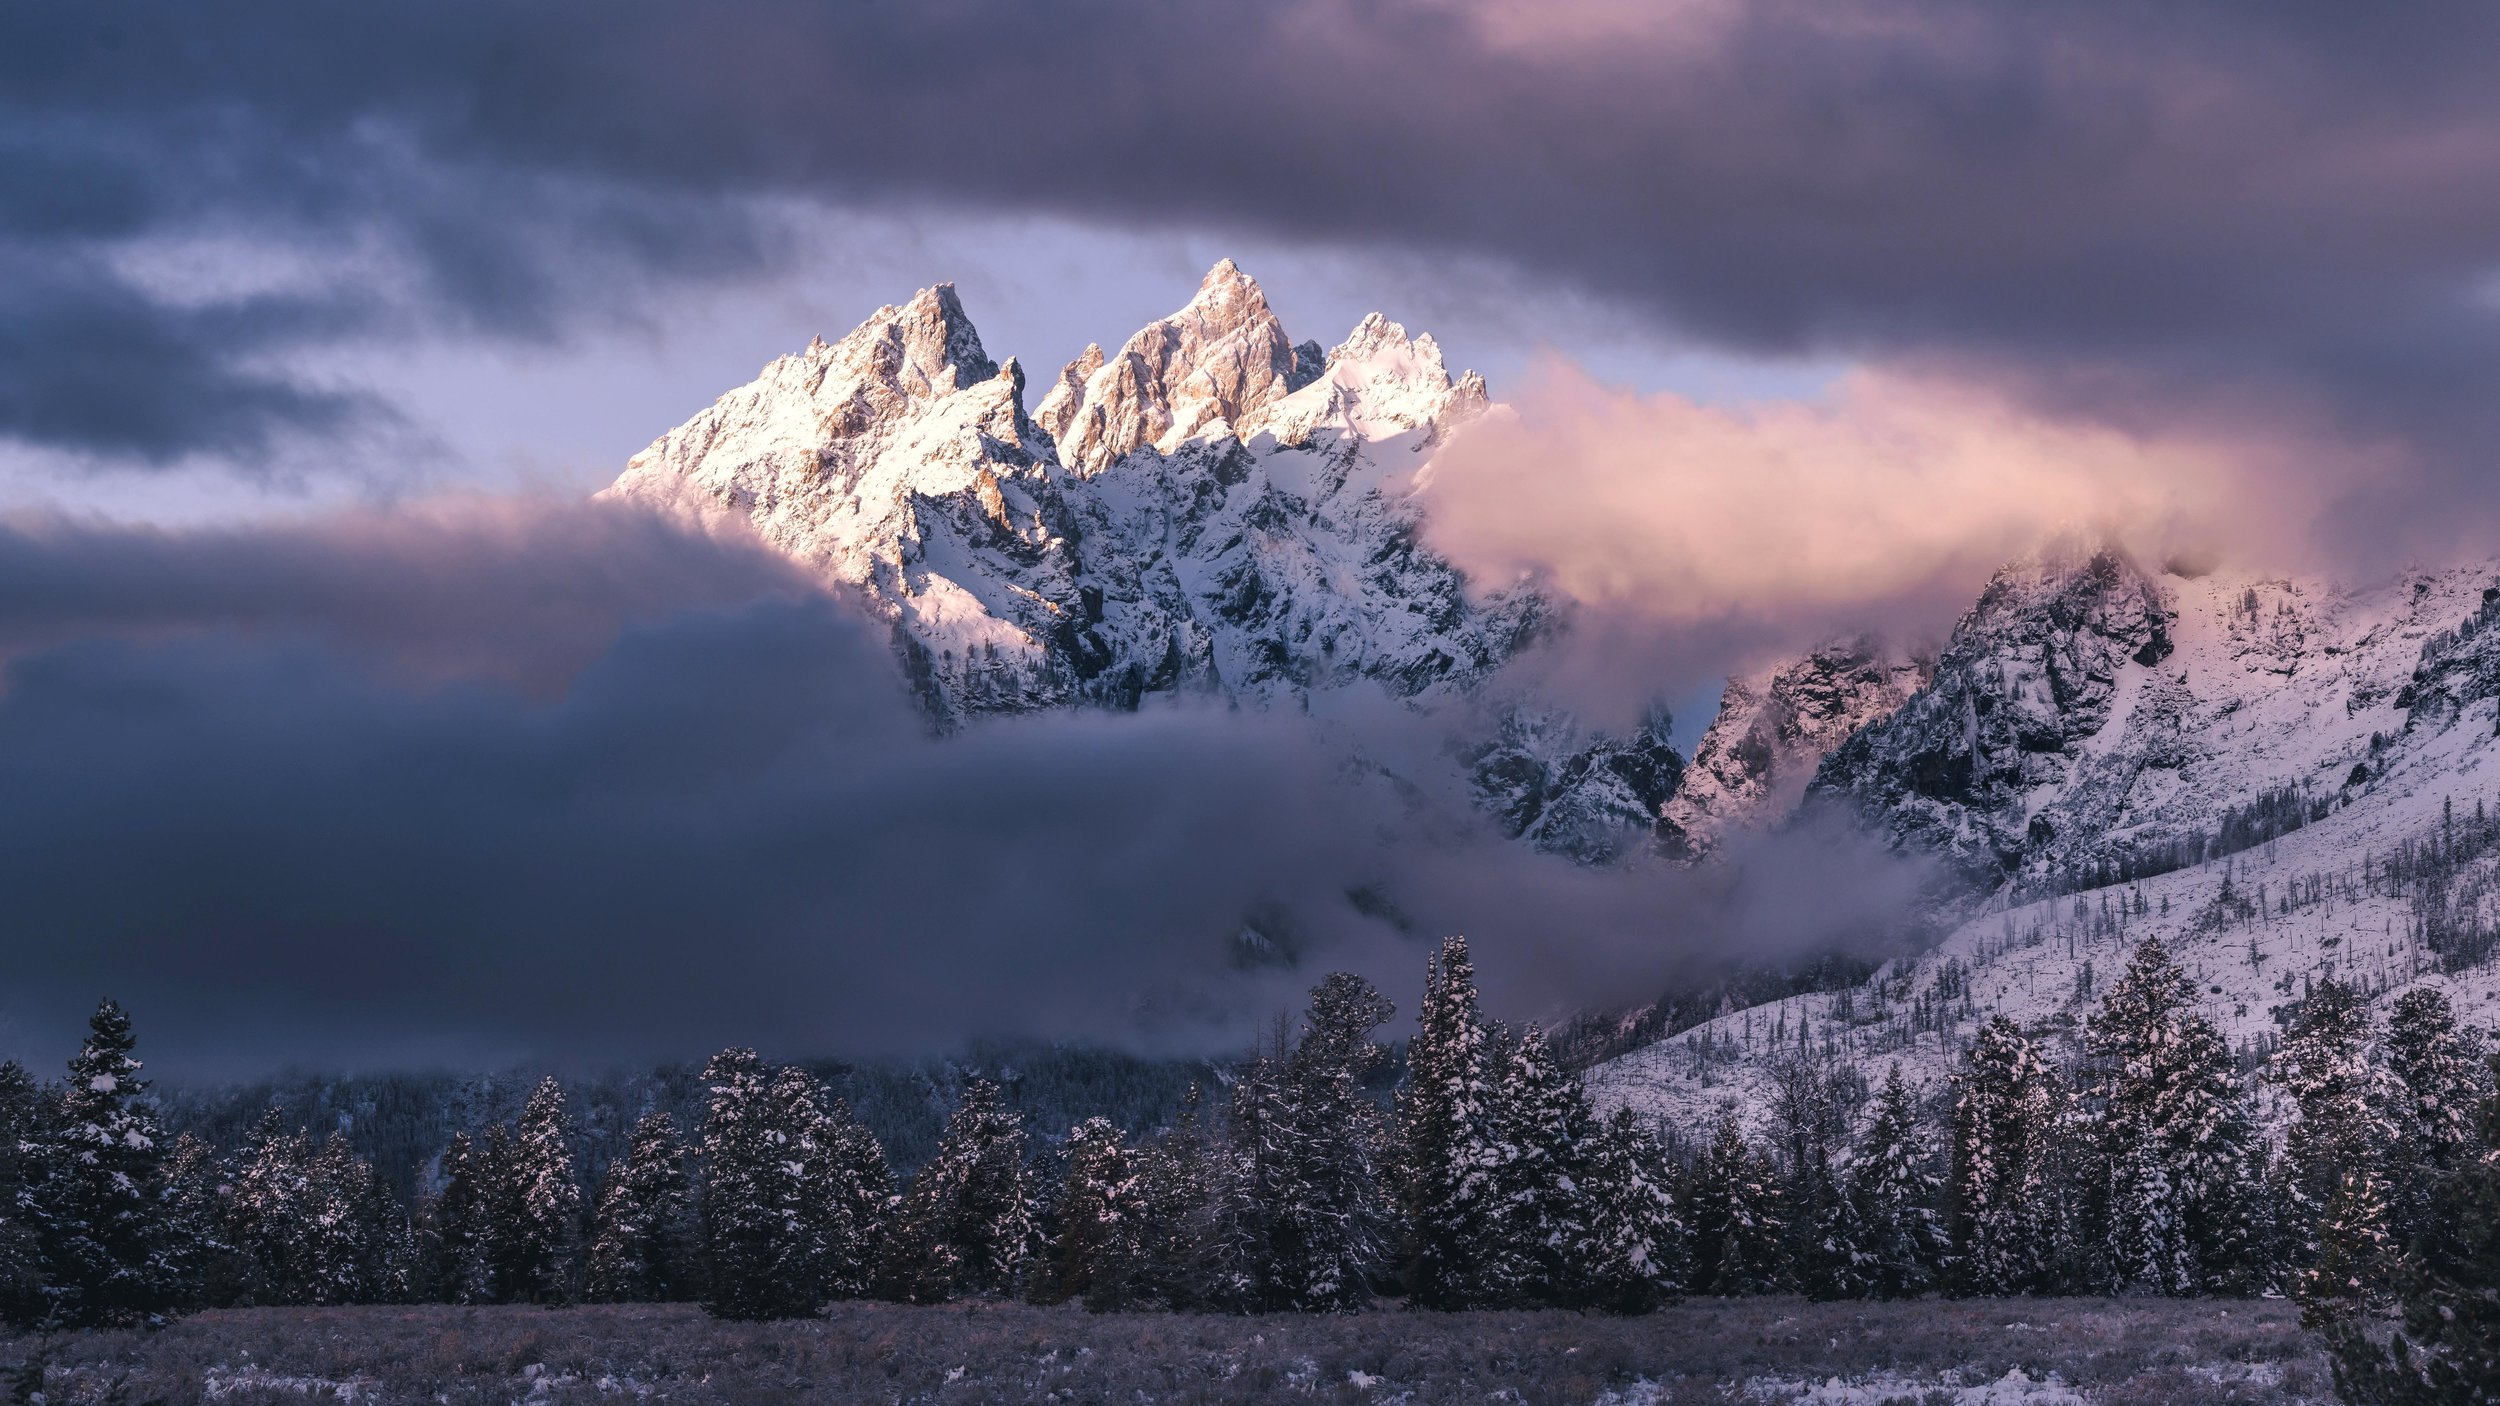 grand teton national park peeking through the clouds.jpg